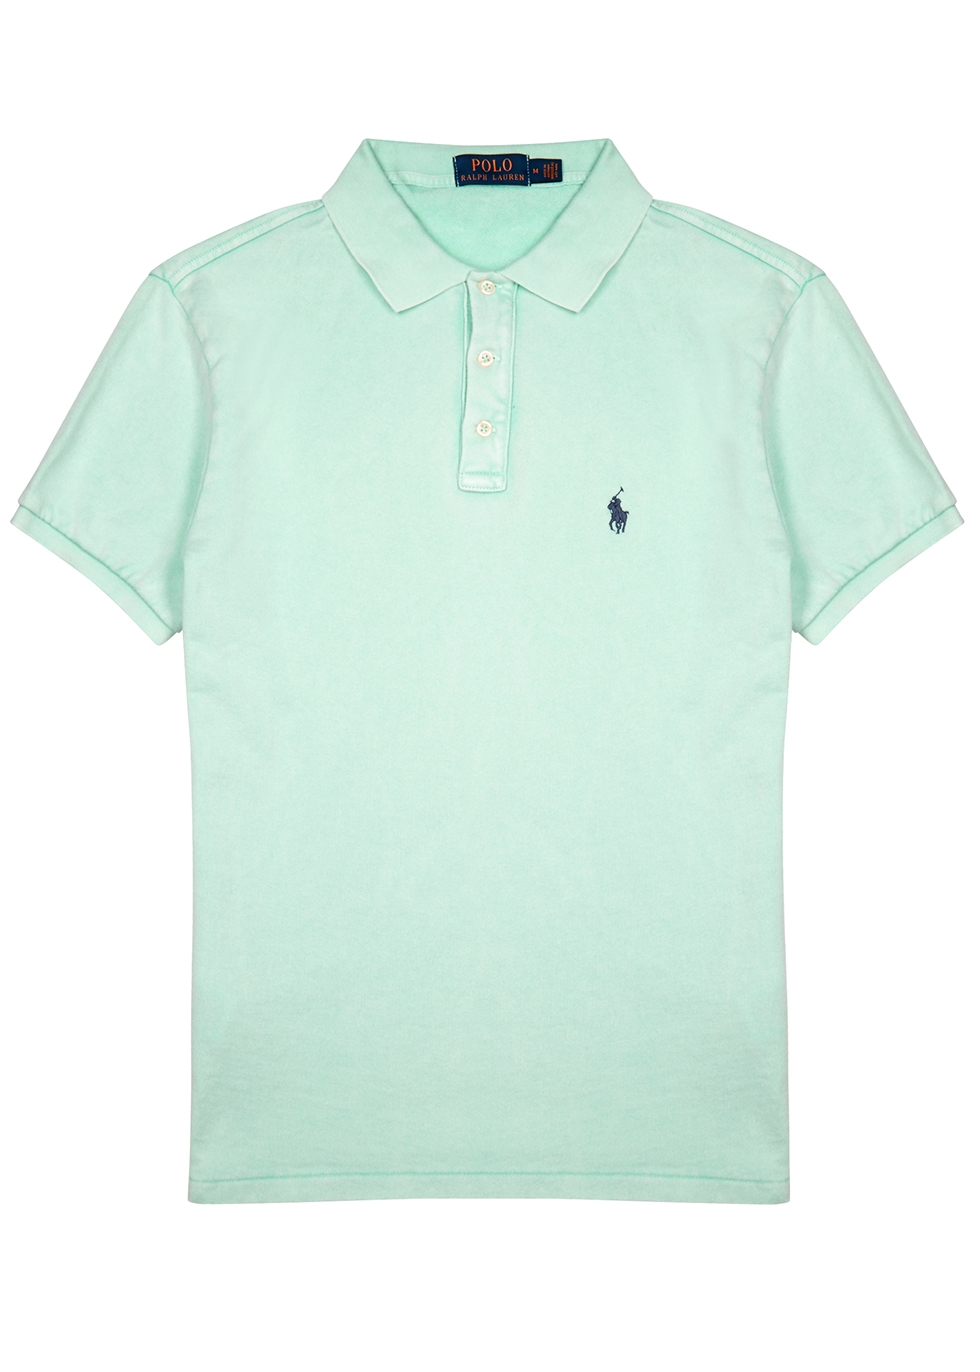 Mint green towelling cotton polo shirt - Polo Ralph Lauren